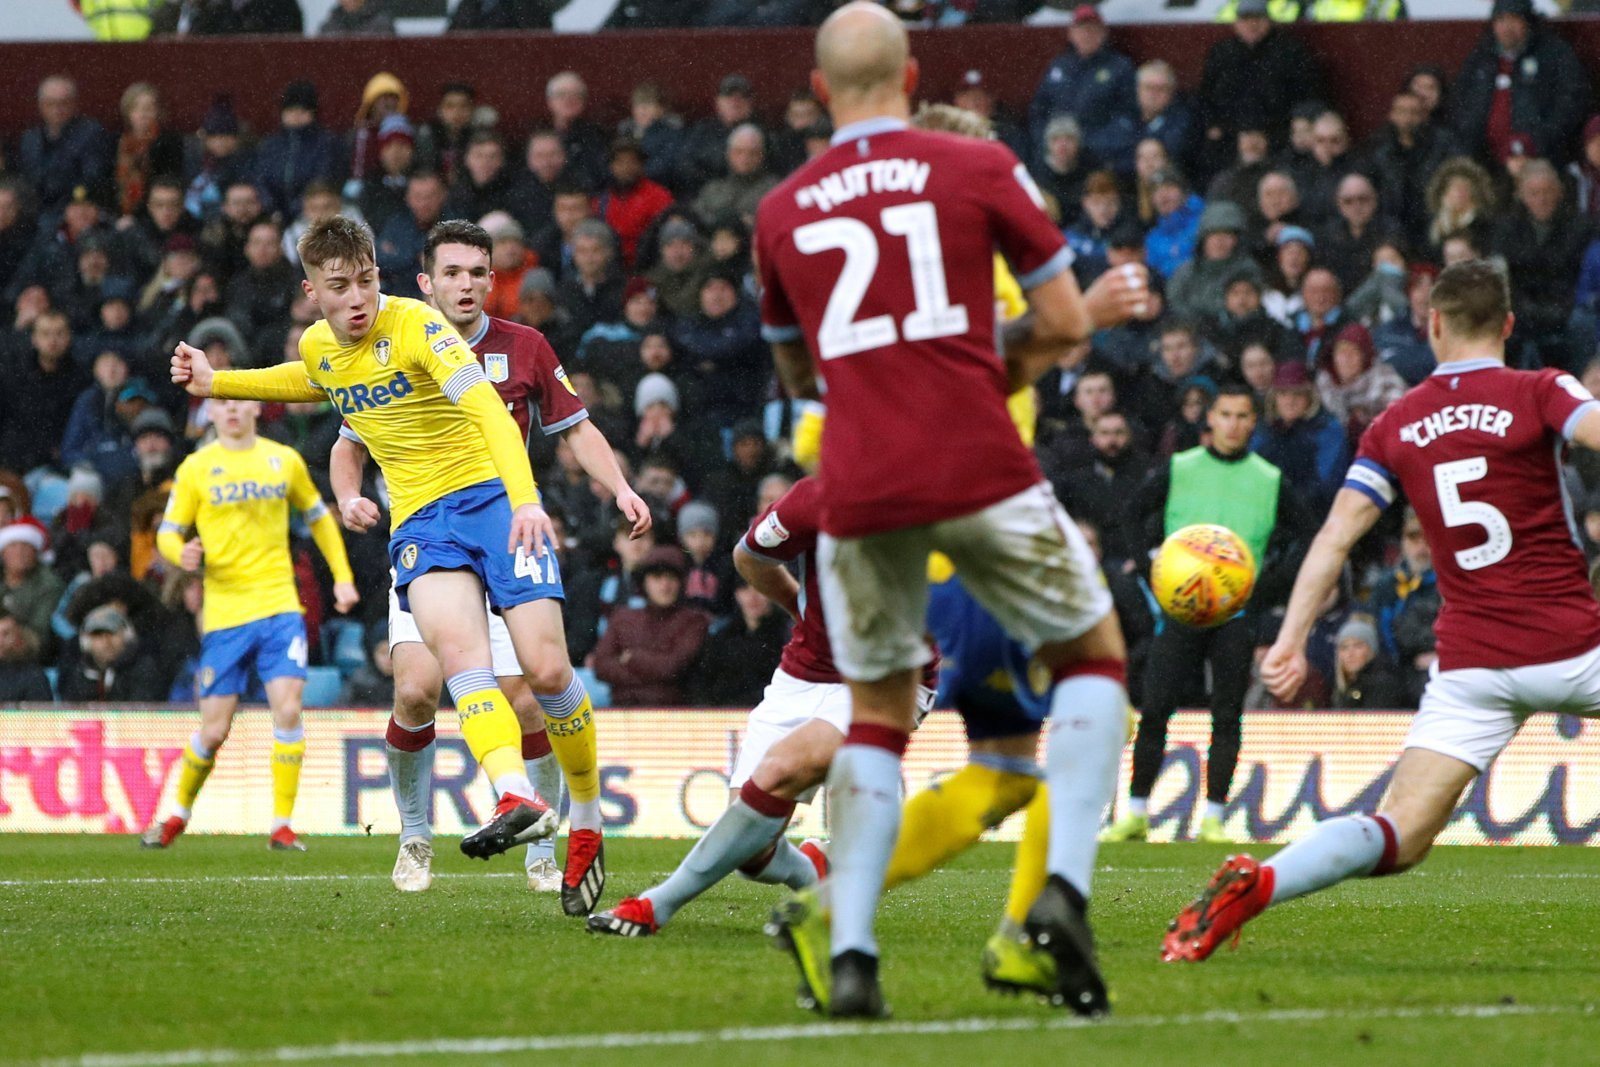 Leeds could lose Jack Clarke this winter